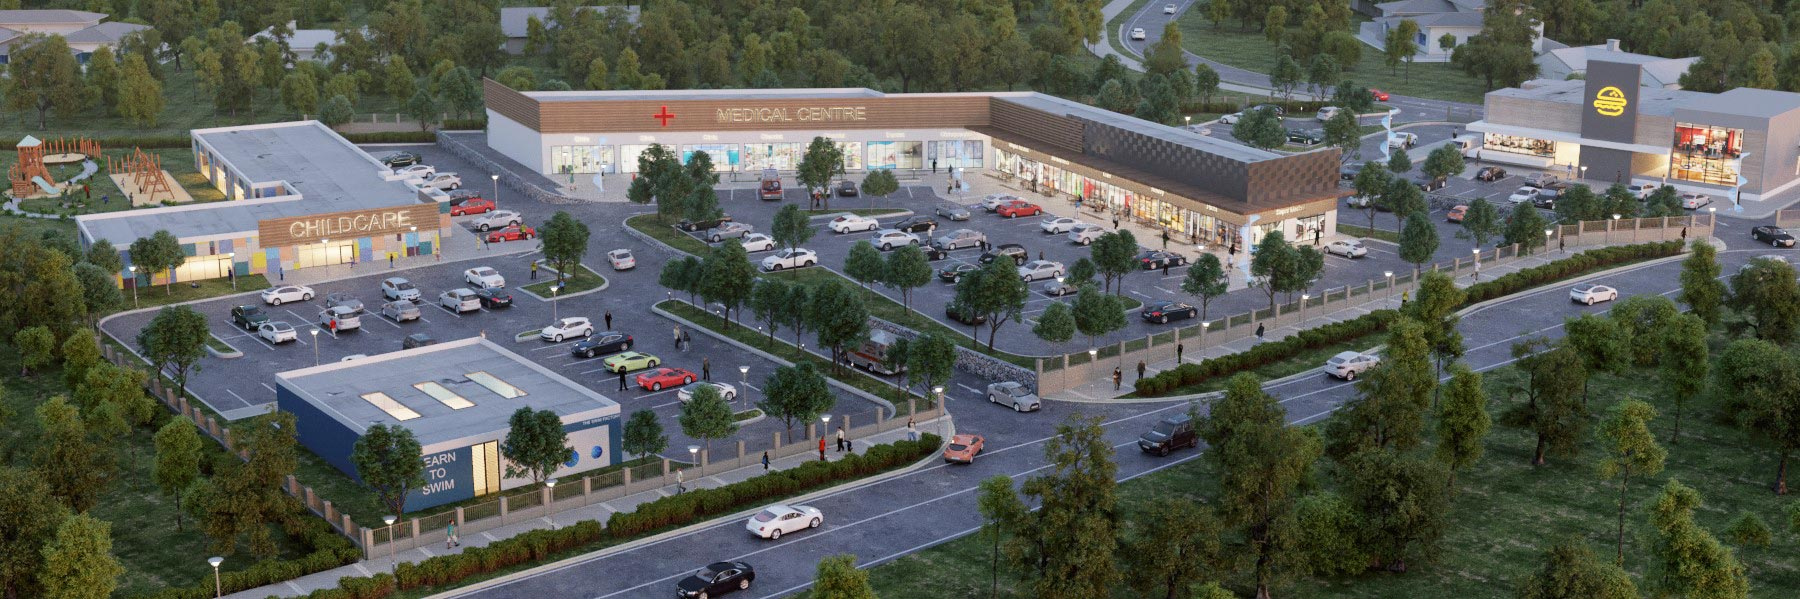 Bahrs Square   Artist's impression of the commercial development